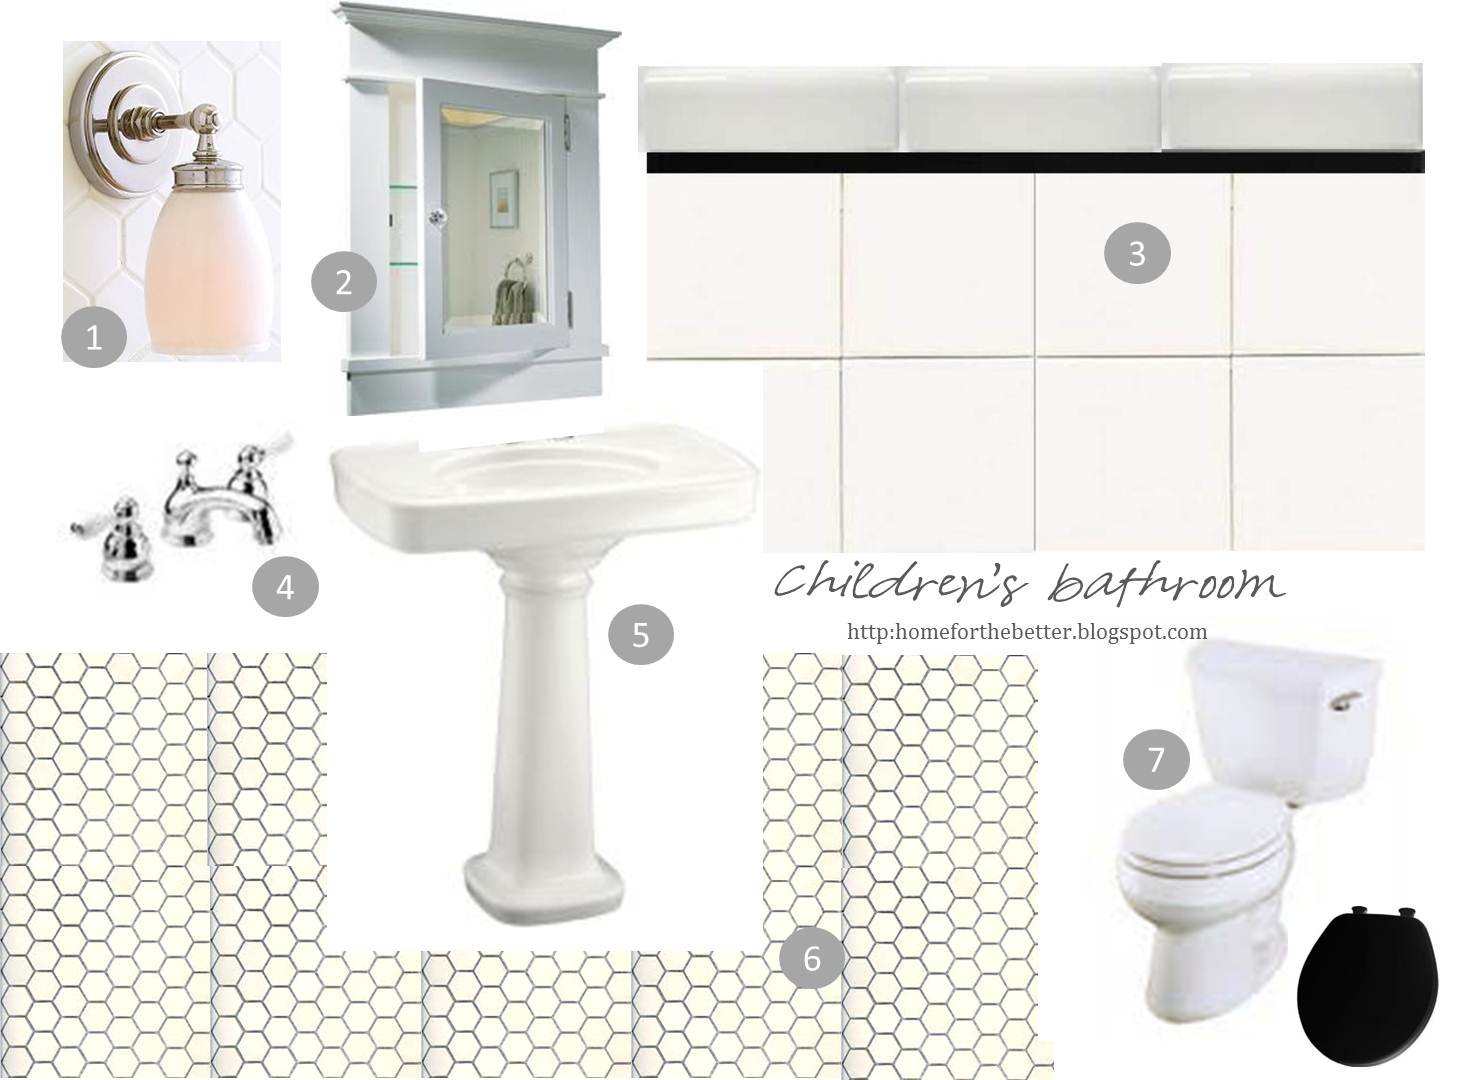 Bathroom Design Board woohooie: children's bathroom design board